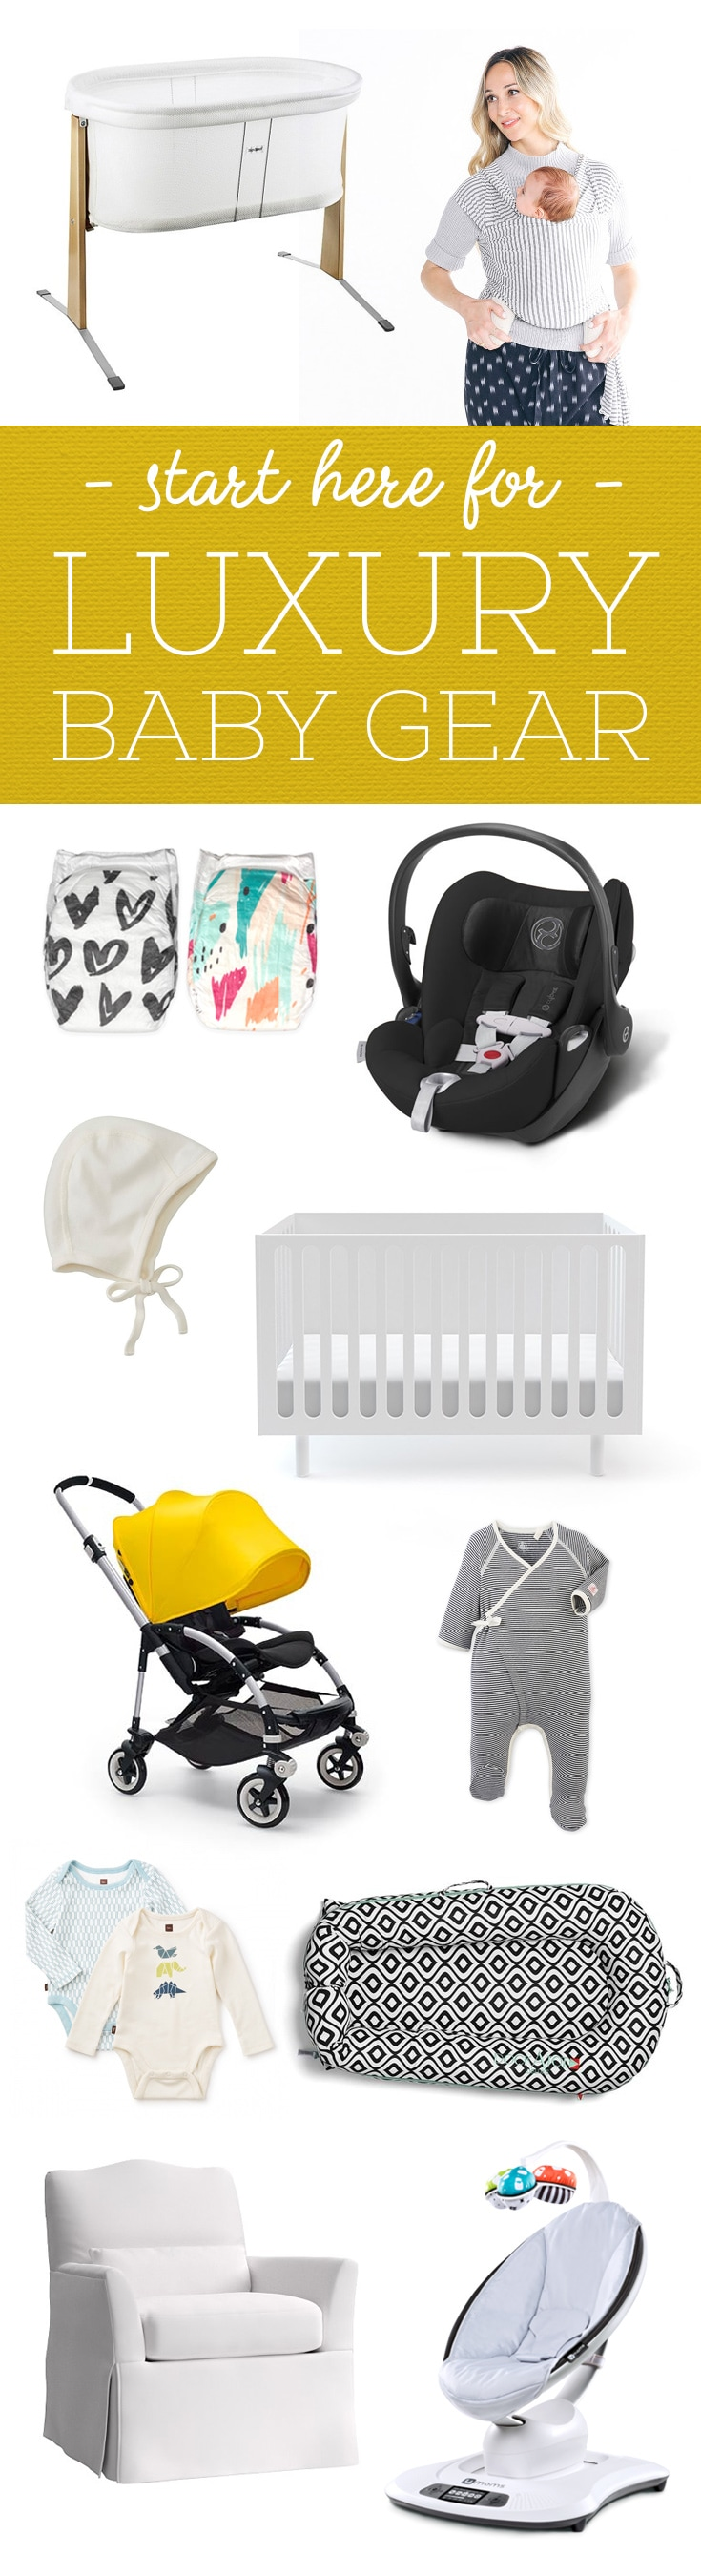 If we hit the Lotto jackpot tomorrow, all this gear is going on our baby registries, stat.